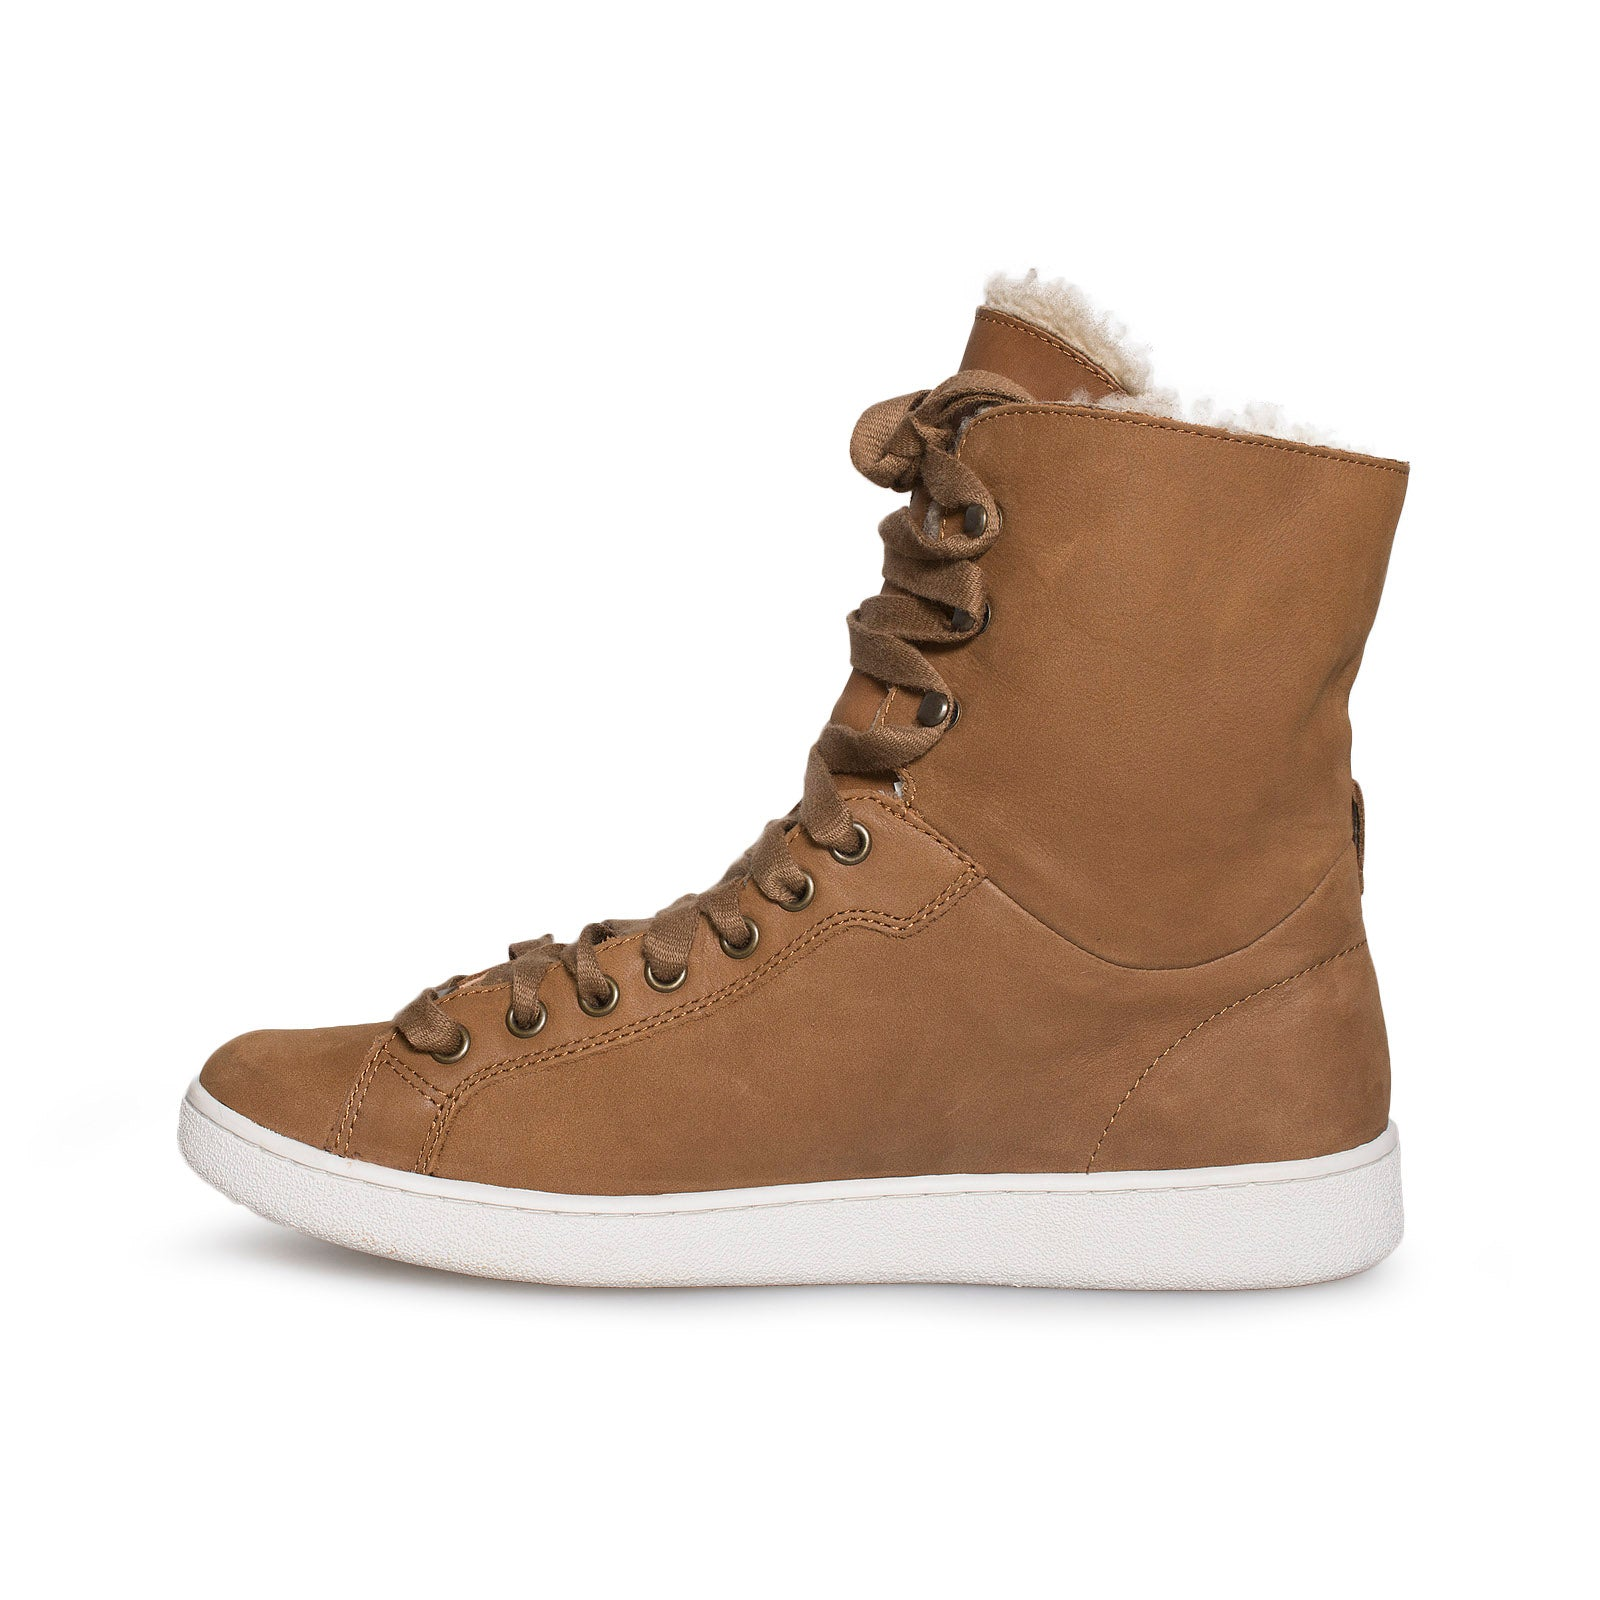 096fbd4089f UGG Starlyn Chestnut Sneakers